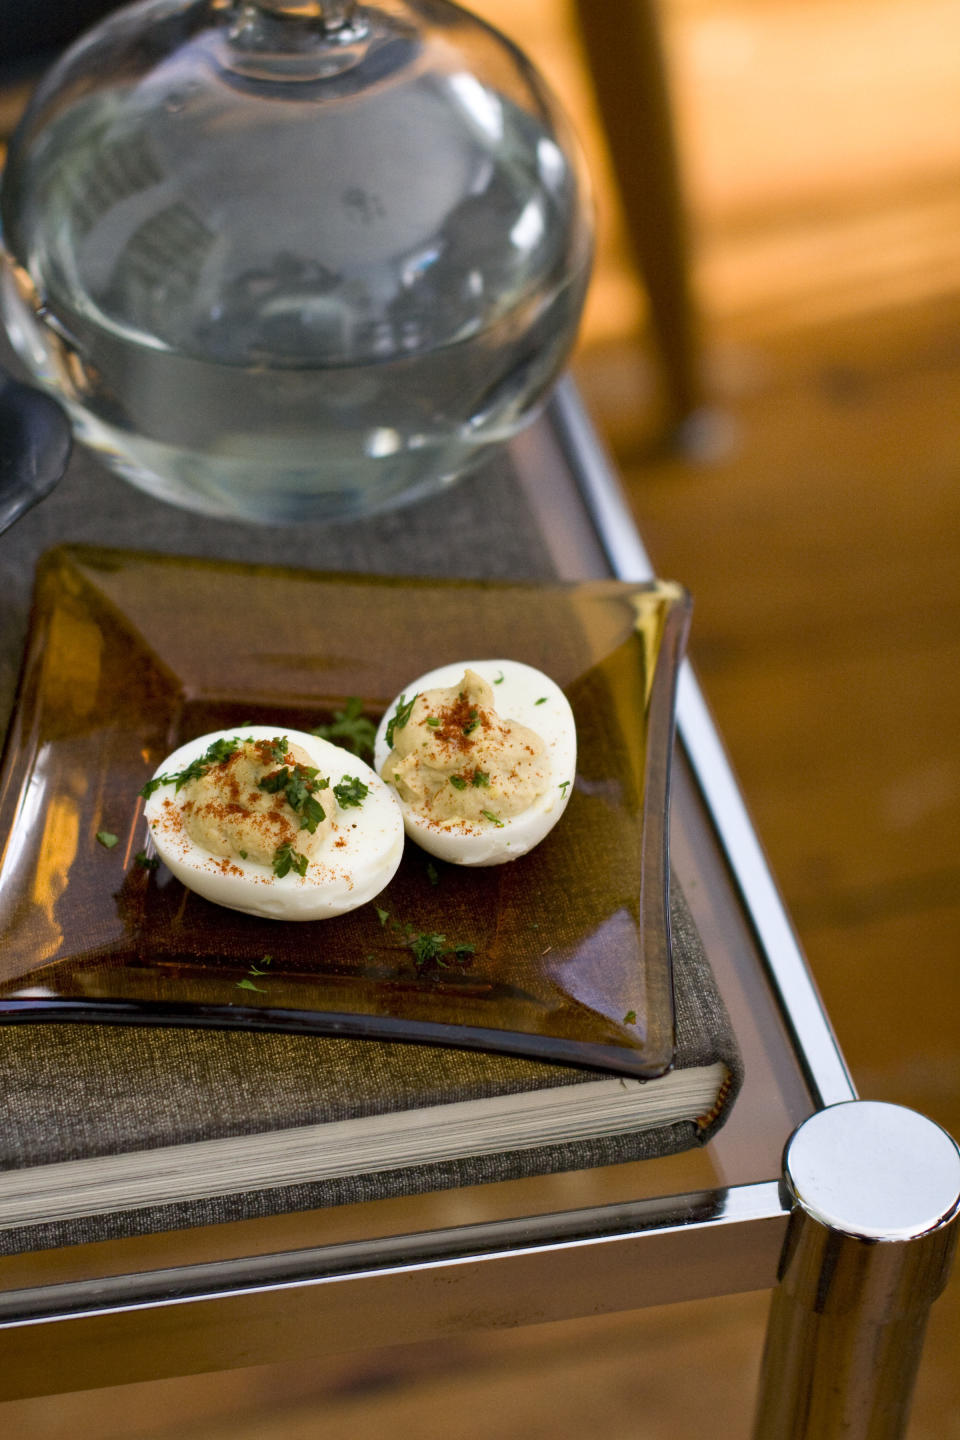 In this Feb. 13, 2012 photo taken in Concord, N.H., a recipe for deviled eggs is shown. (AP Photo/Matthew Mead)